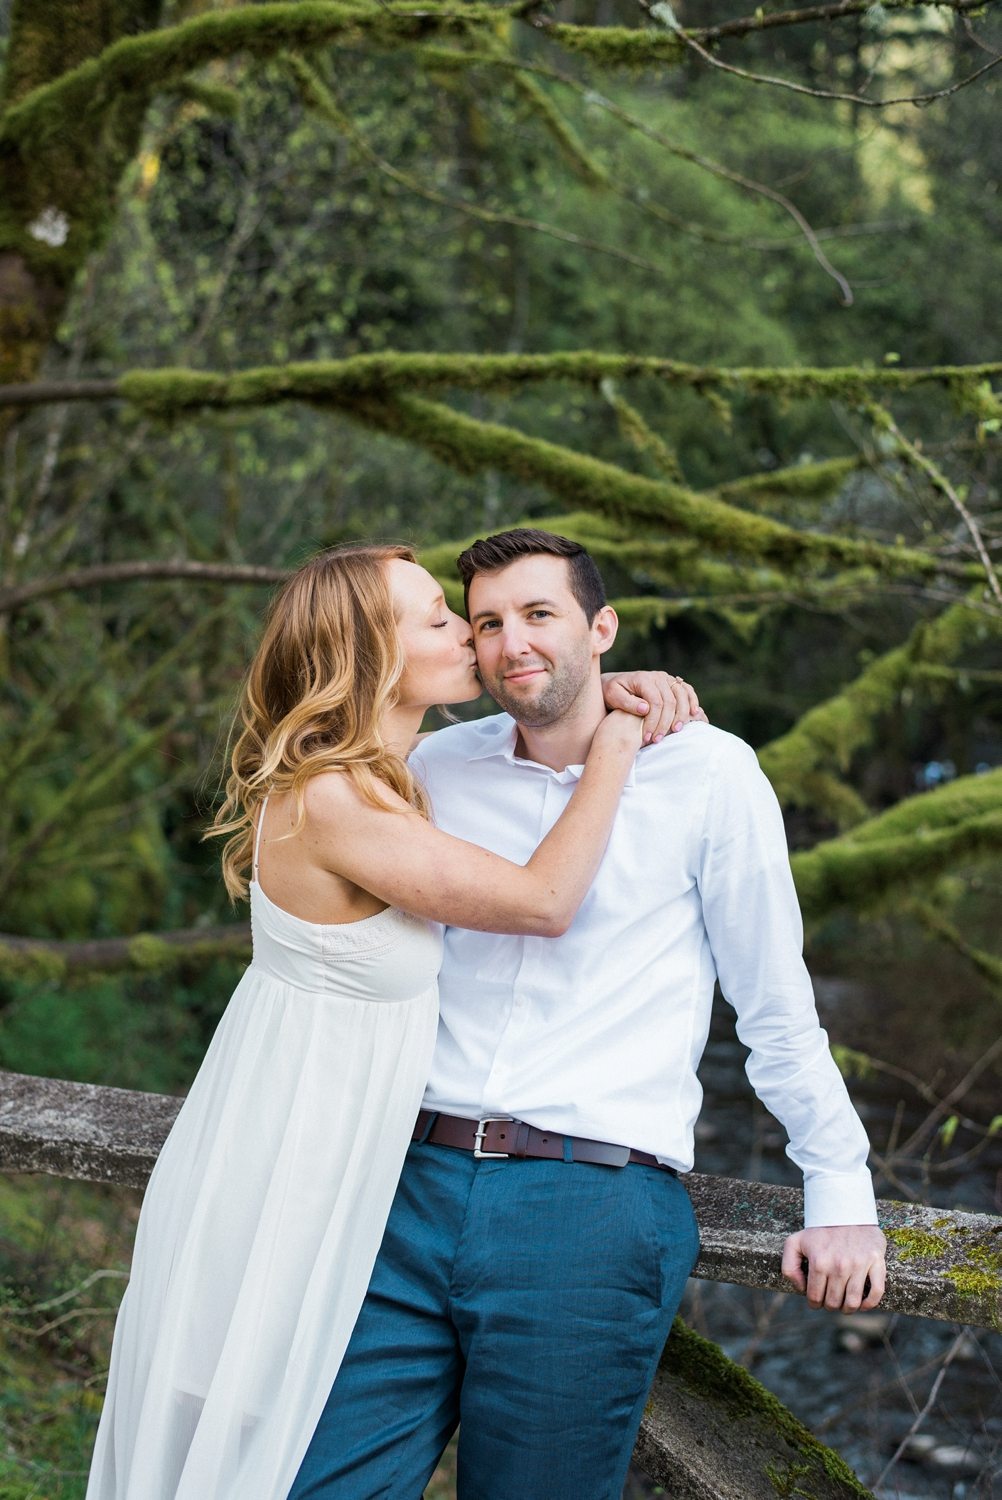 portland-engagement-columbia-river-gorge-oneonta-latourell-waterfall-shelley-marie-photo-072_cr.jpg